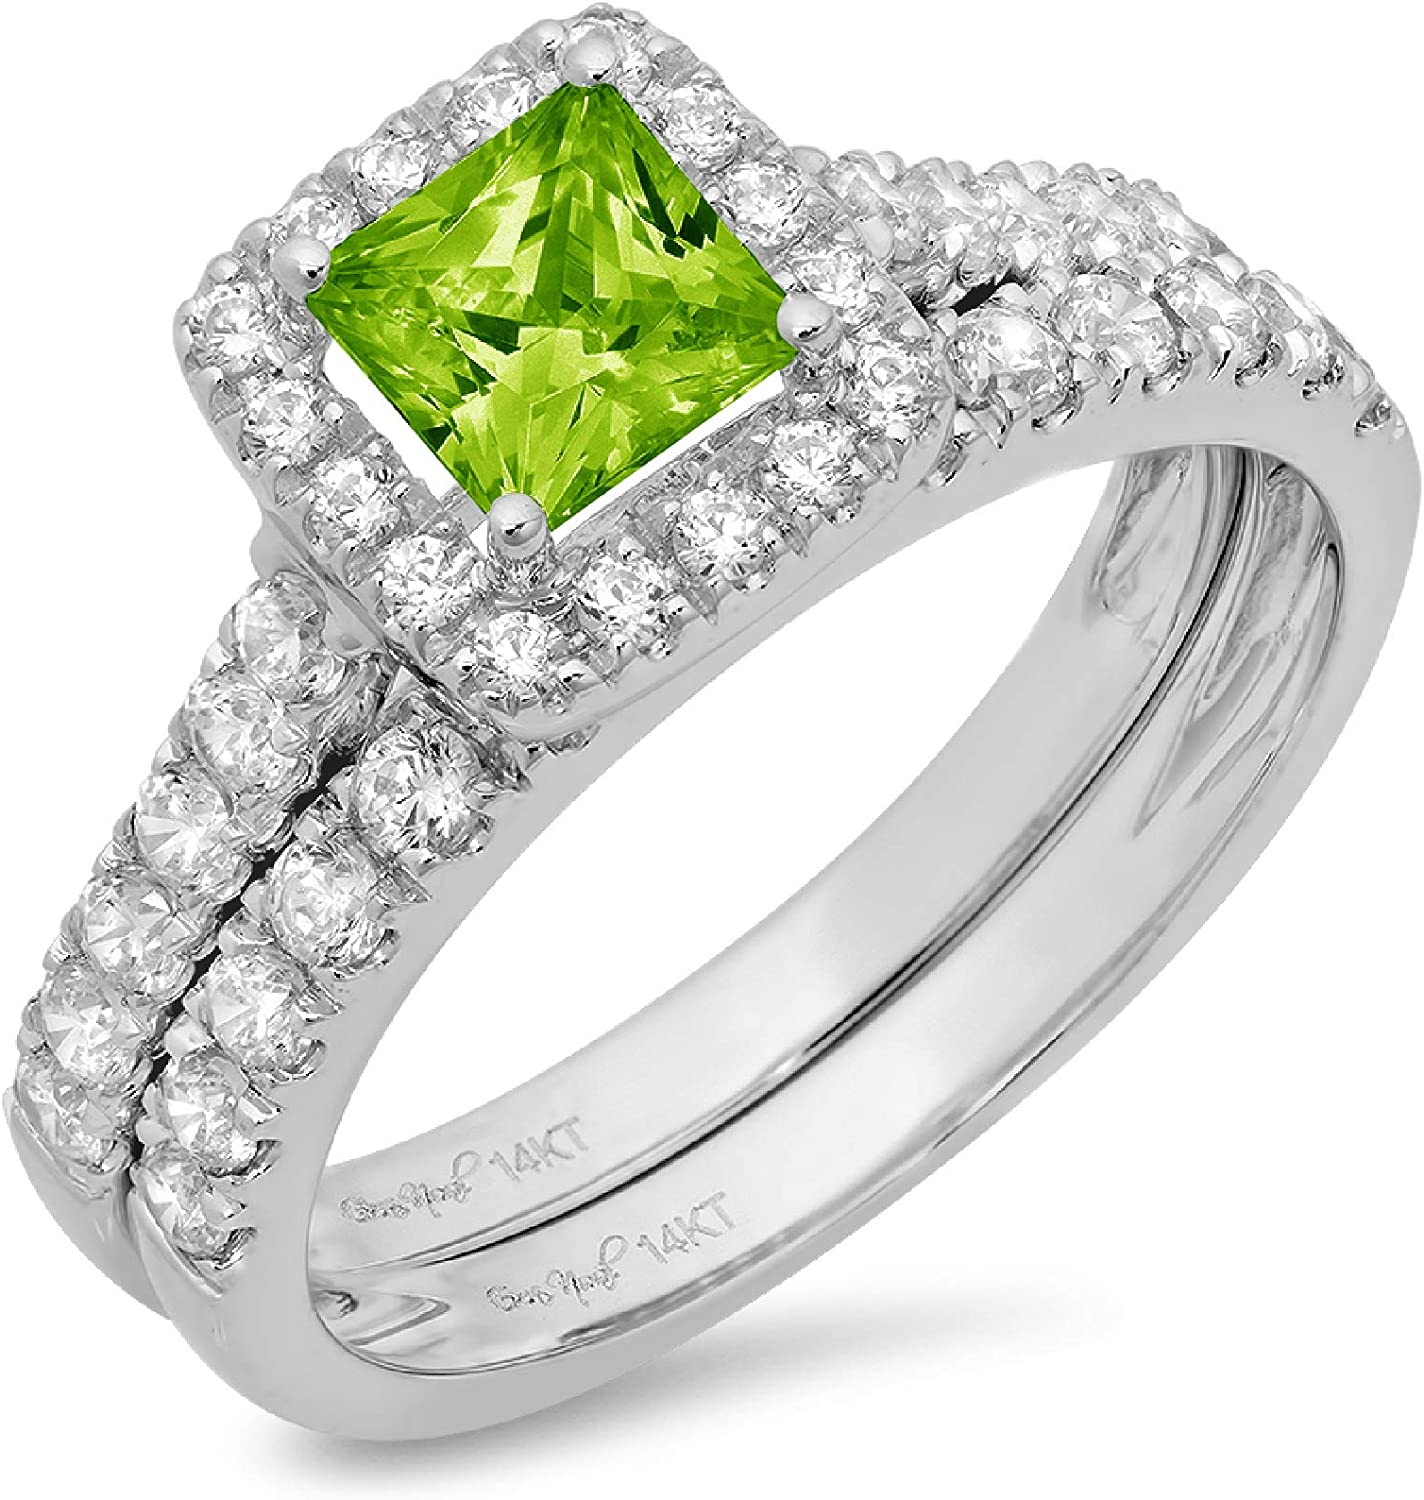 1.54ct Princess Cut Halo Pave Solitaire with Accent VVS1 Ideal Flawless Genuine Natural Vivid Green Peridot Engagement Promise Designer Anniversary Wedding Bridal Ring band set 14k White Gold